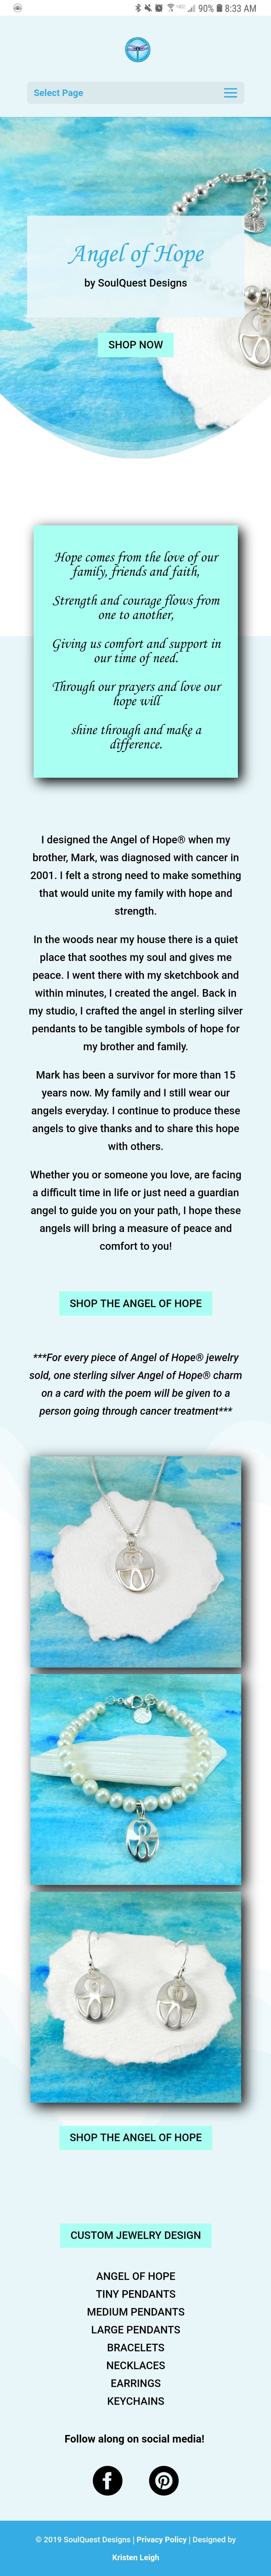 Kristen Leigh | WordPress Web Design Studio | SoulQuest Designs Portfolio Piece | Angel of Hope on Mobile